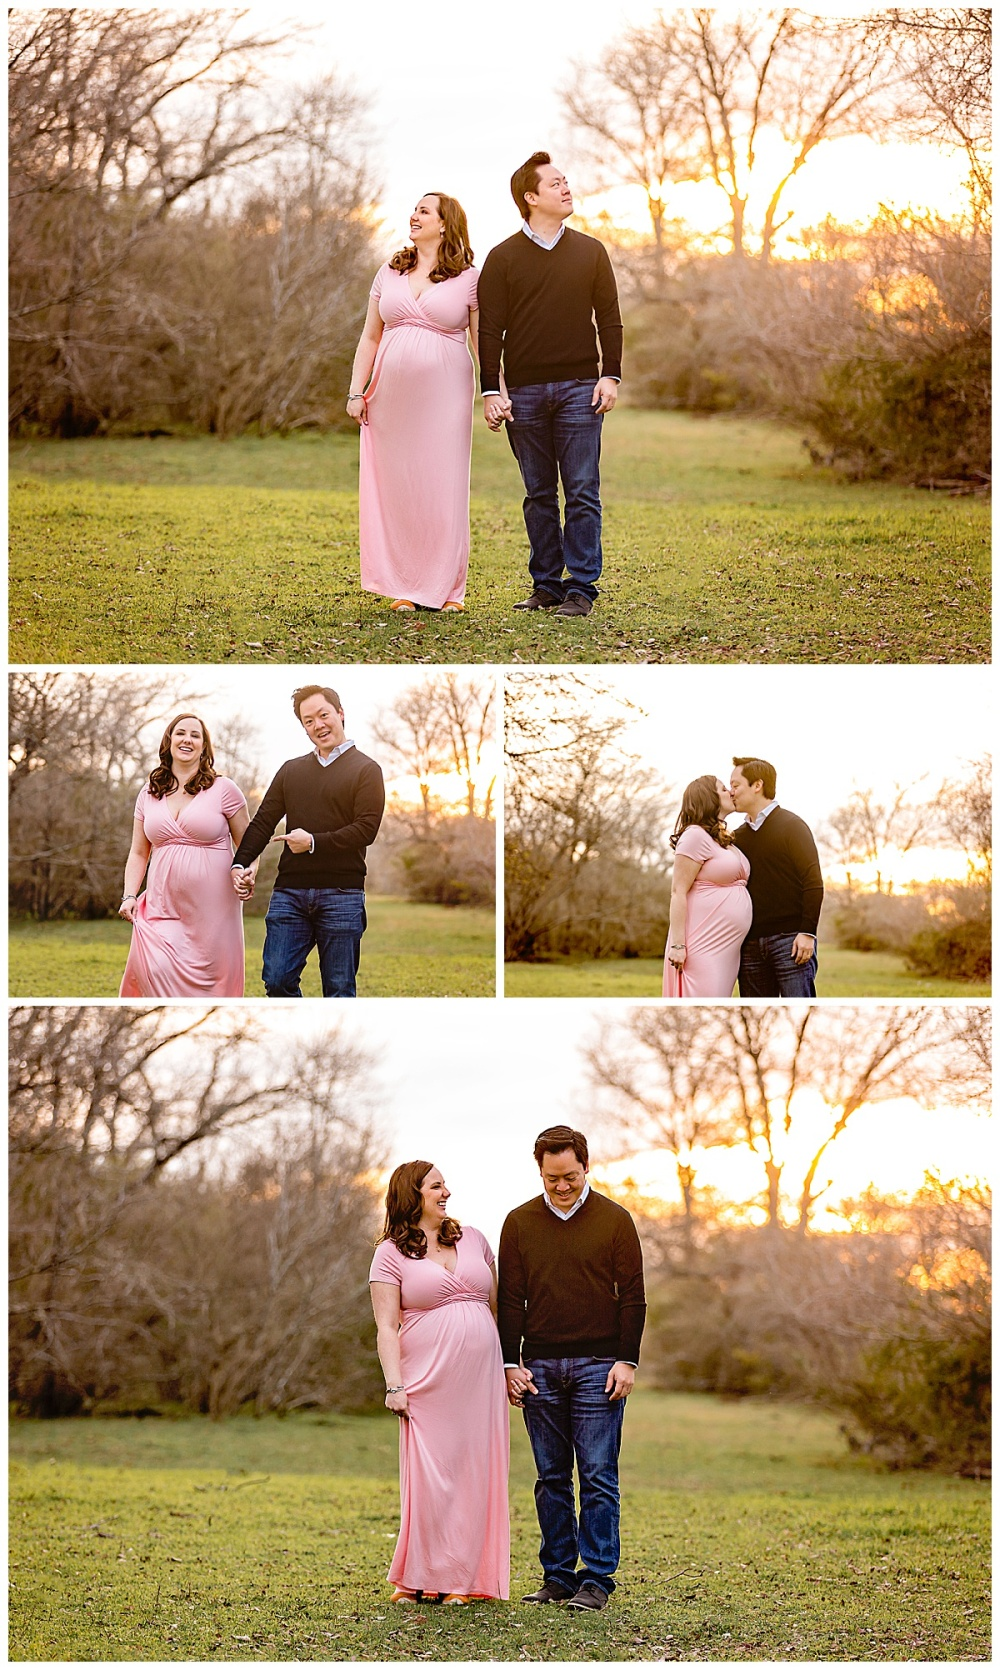 Maternity-Photographer-Texas-Carly-Barton-Photography-LaVernia-Photos_0003.jpg